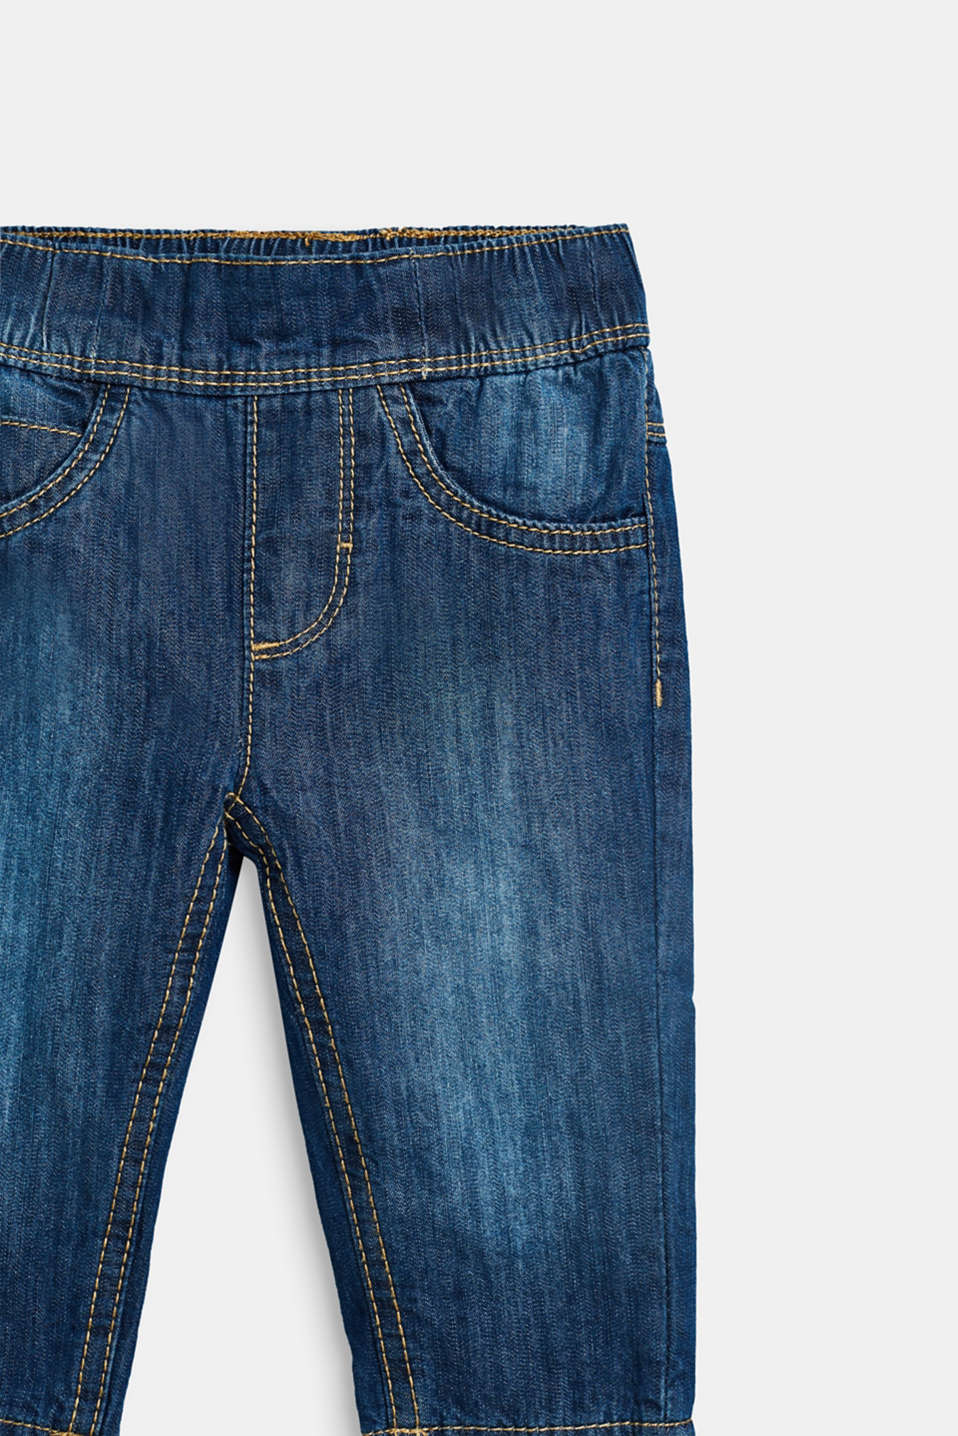 Soft cotton jeans with jersey lining, LCMEDIUM WASH DE, detail image number 2